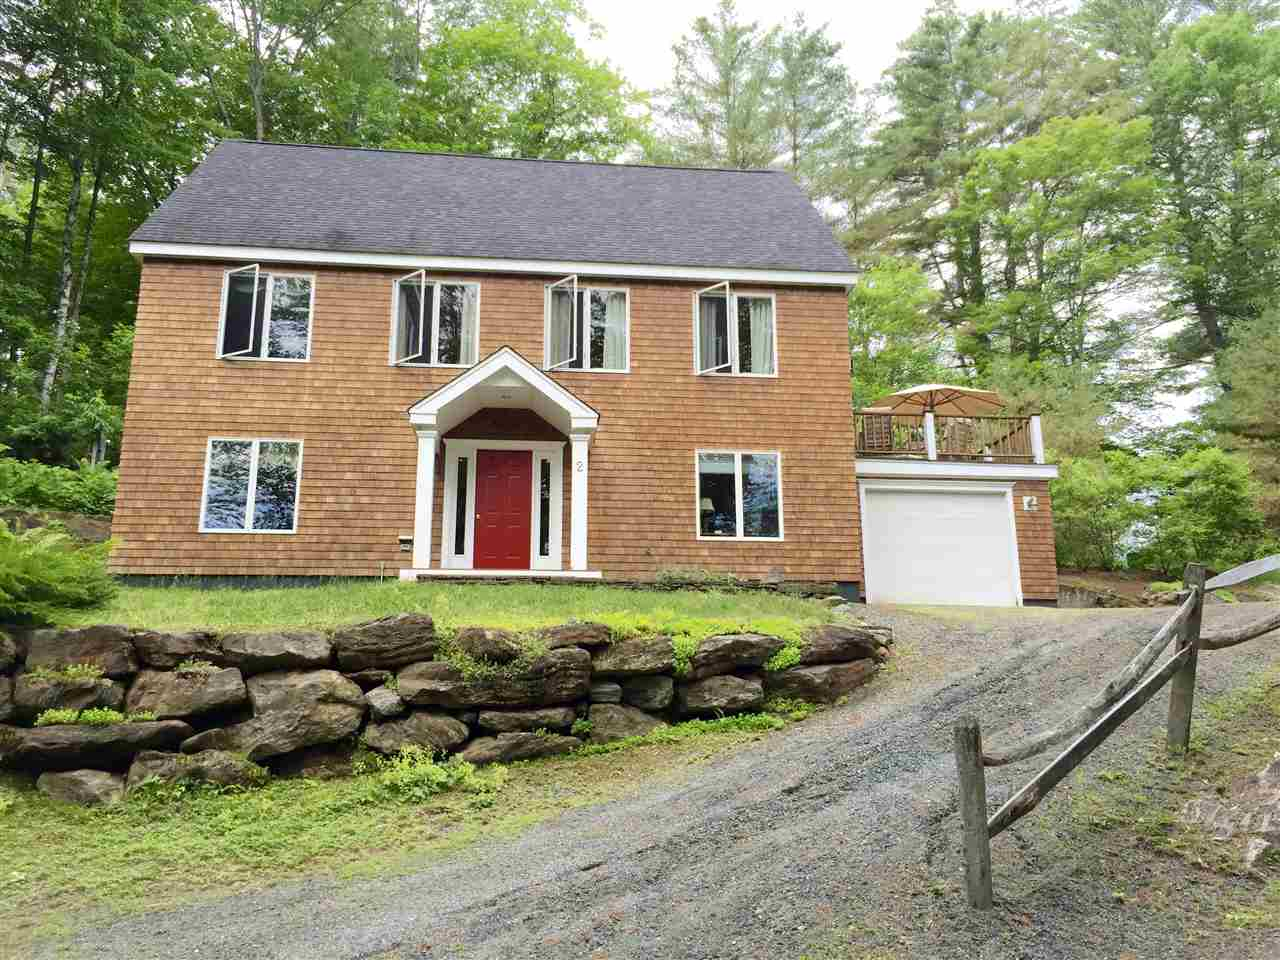 image of Woodstock VT Home | sq.ft. 2435